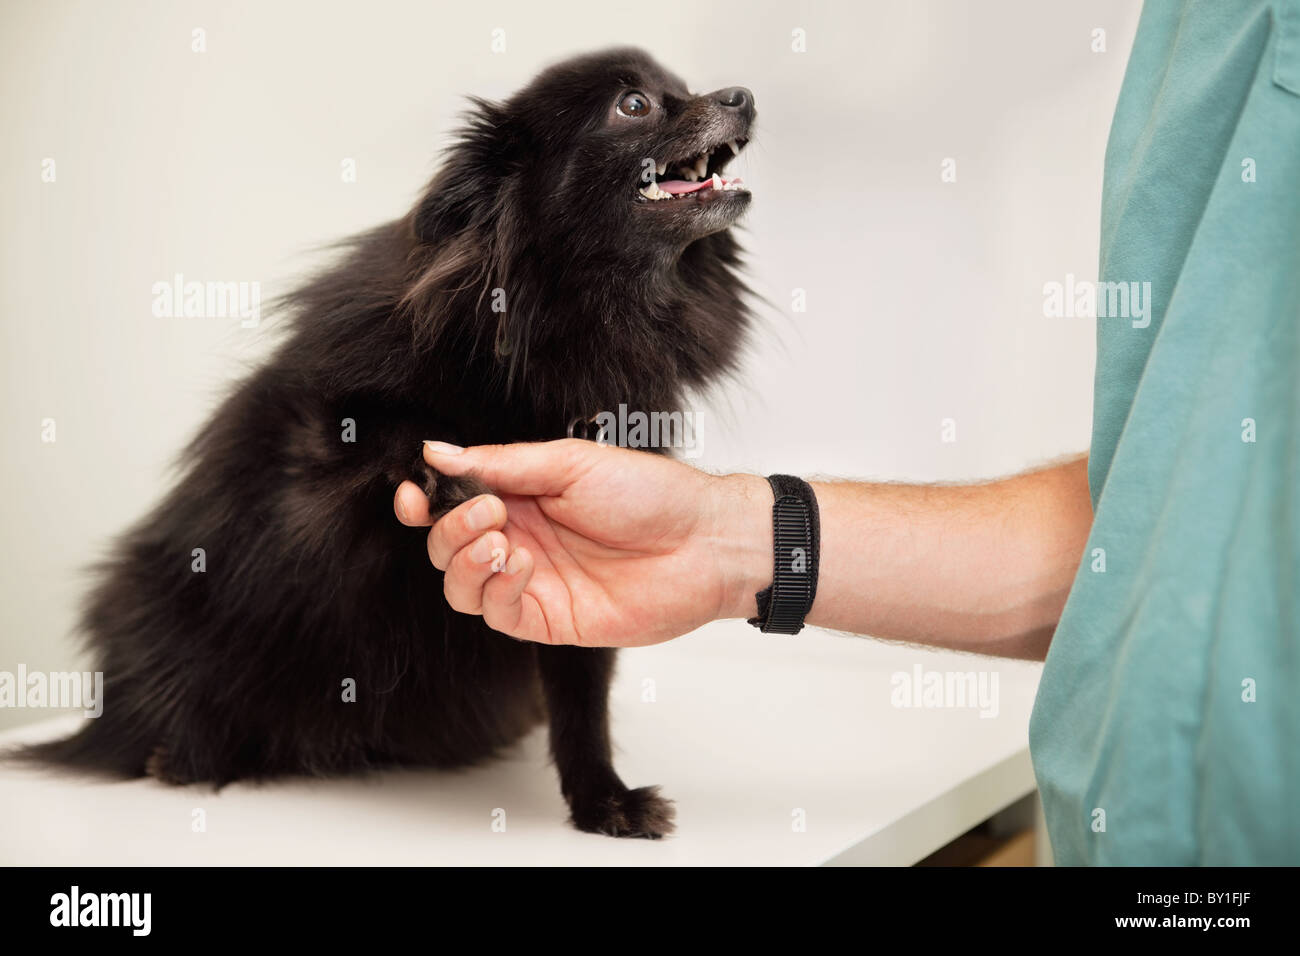 Close-up of veterinarian examining dog's paw - greeting pet - Stock Image